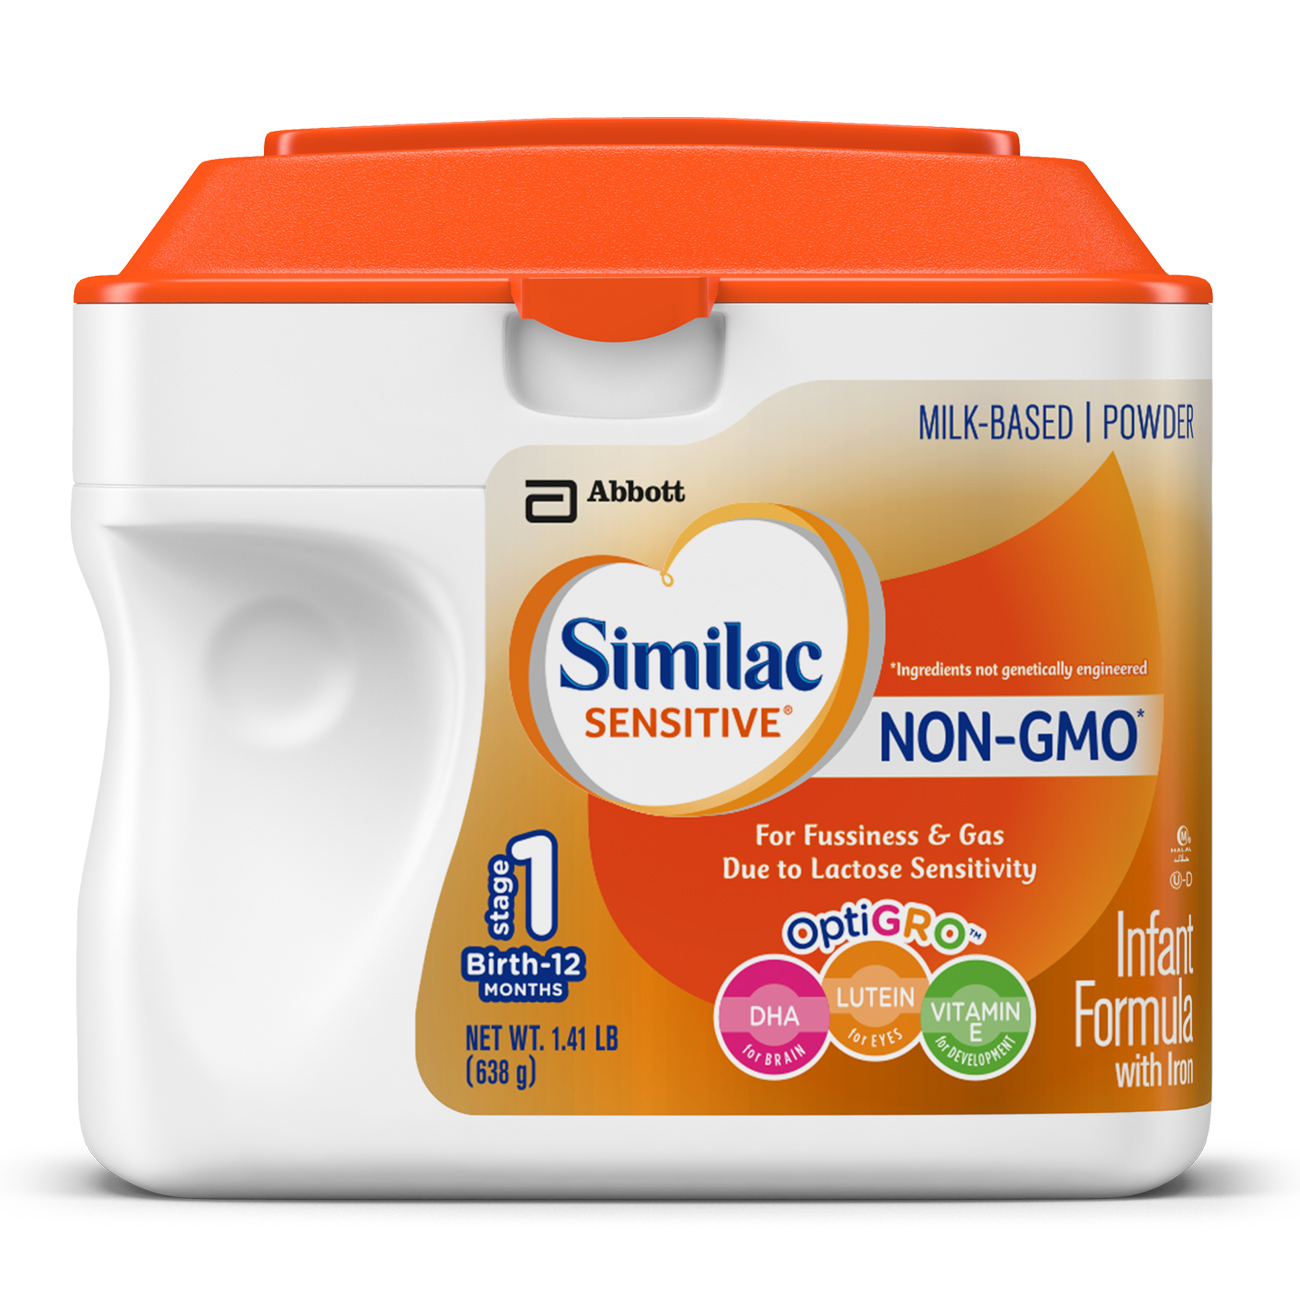 Similac Sensitive NON-GMO Milk-Based Infant Formula with Iron, Powder, 1.41 lbs